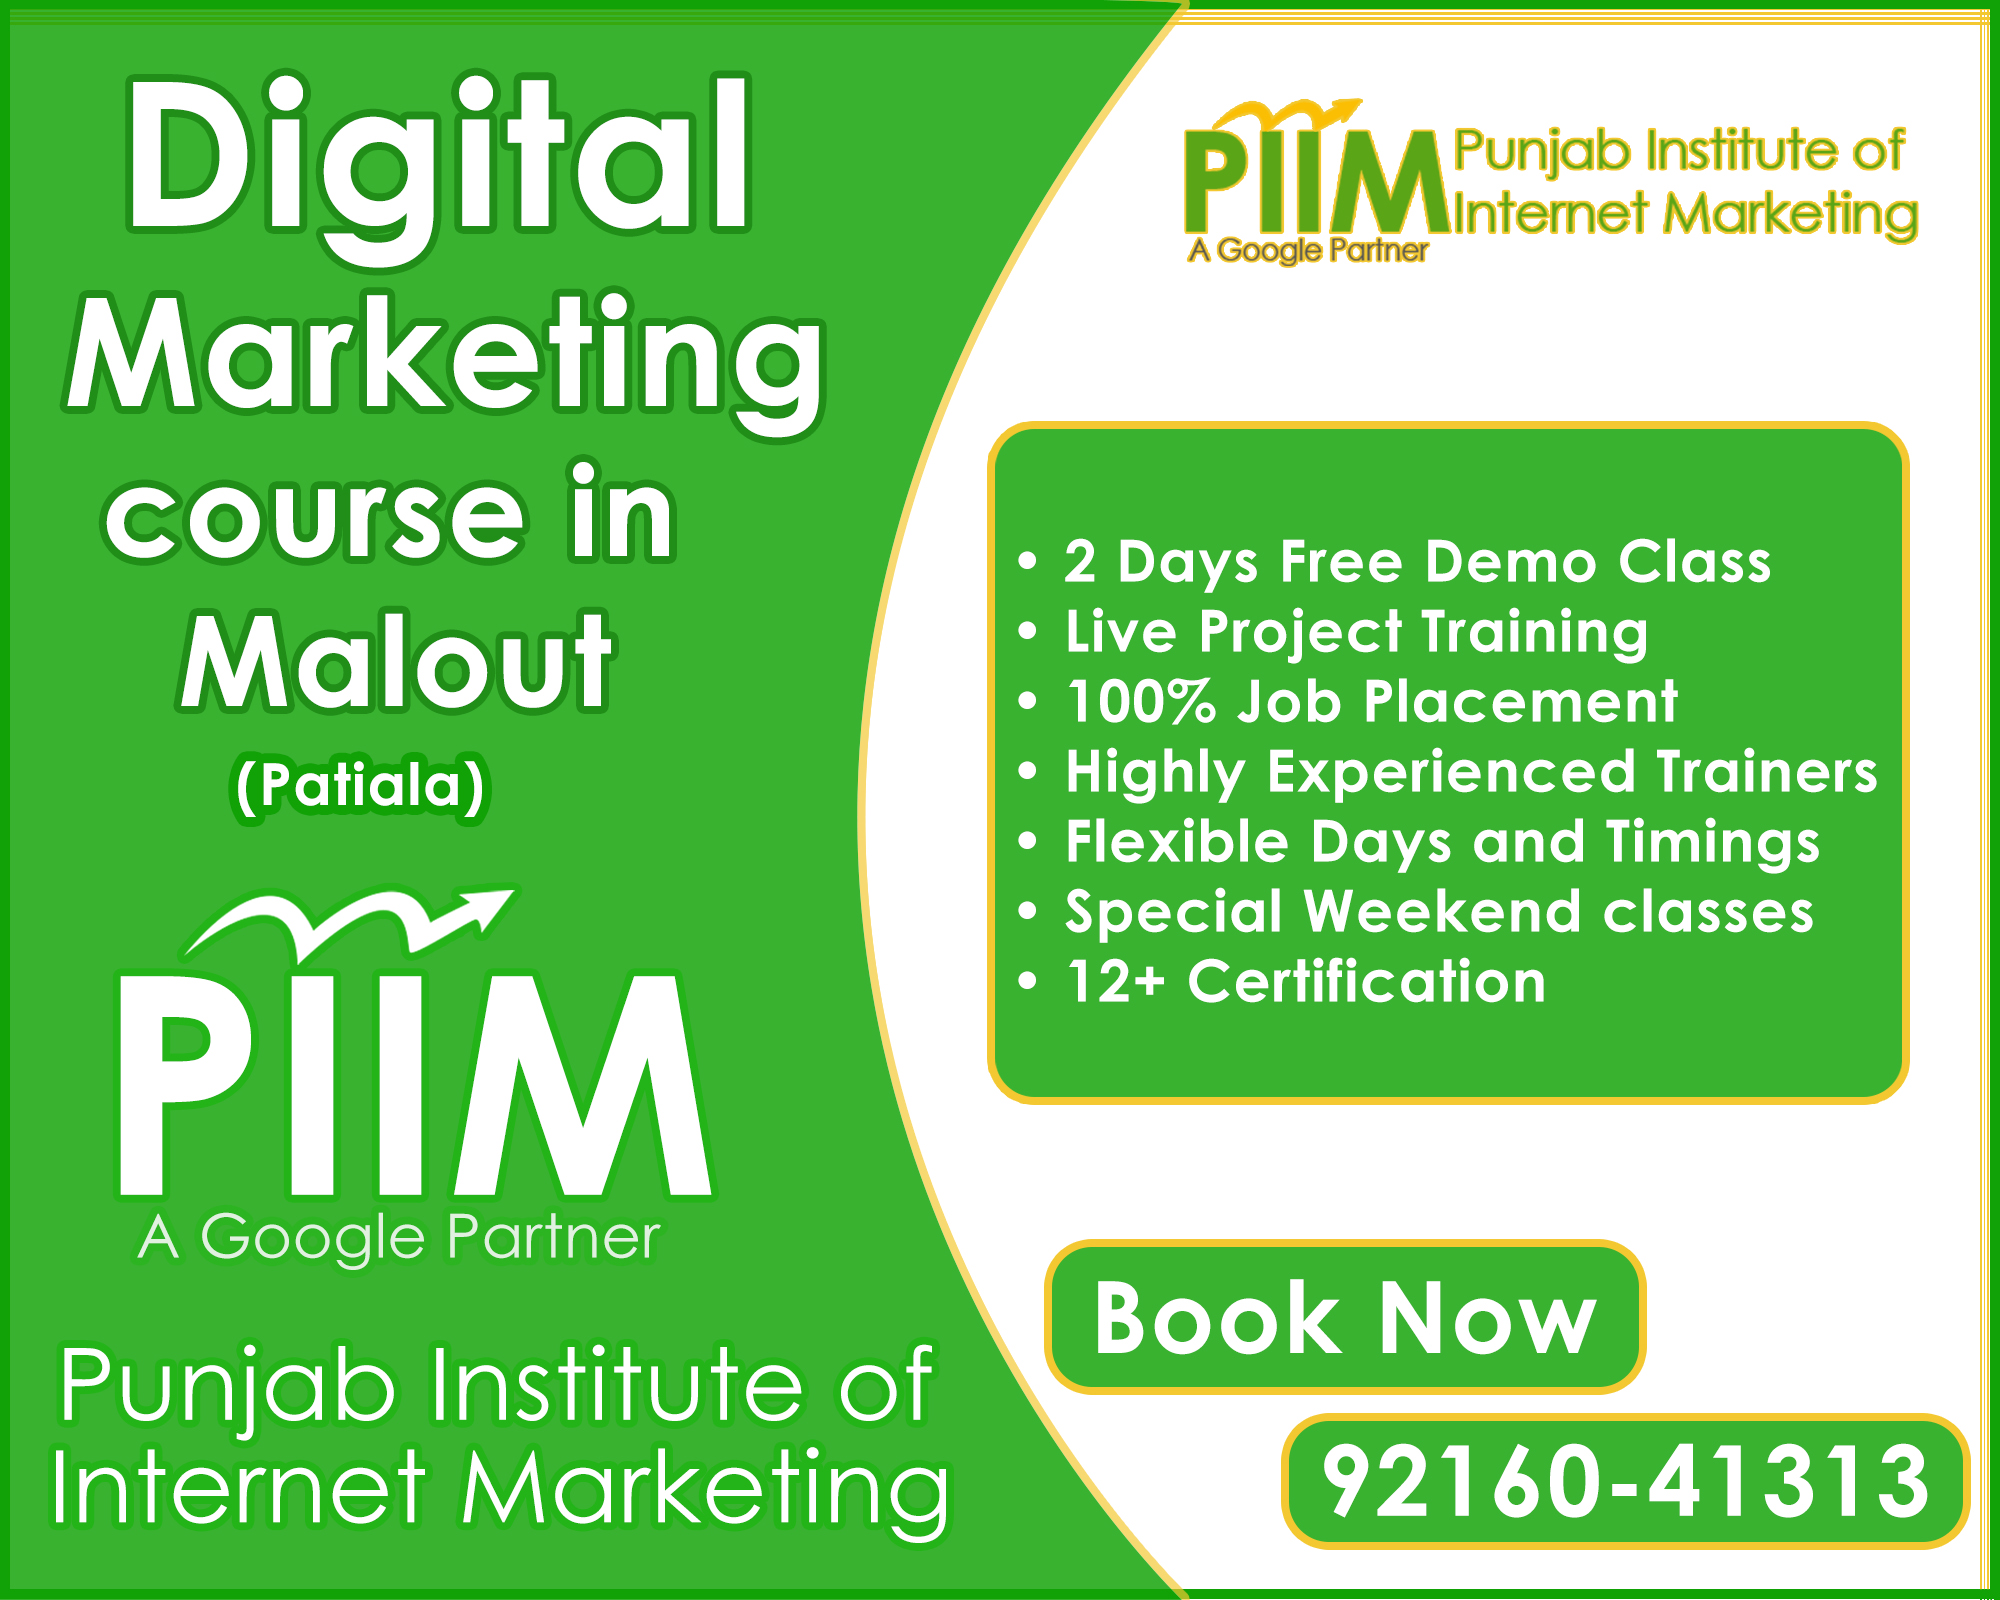 Digital Marketing Course in Malout